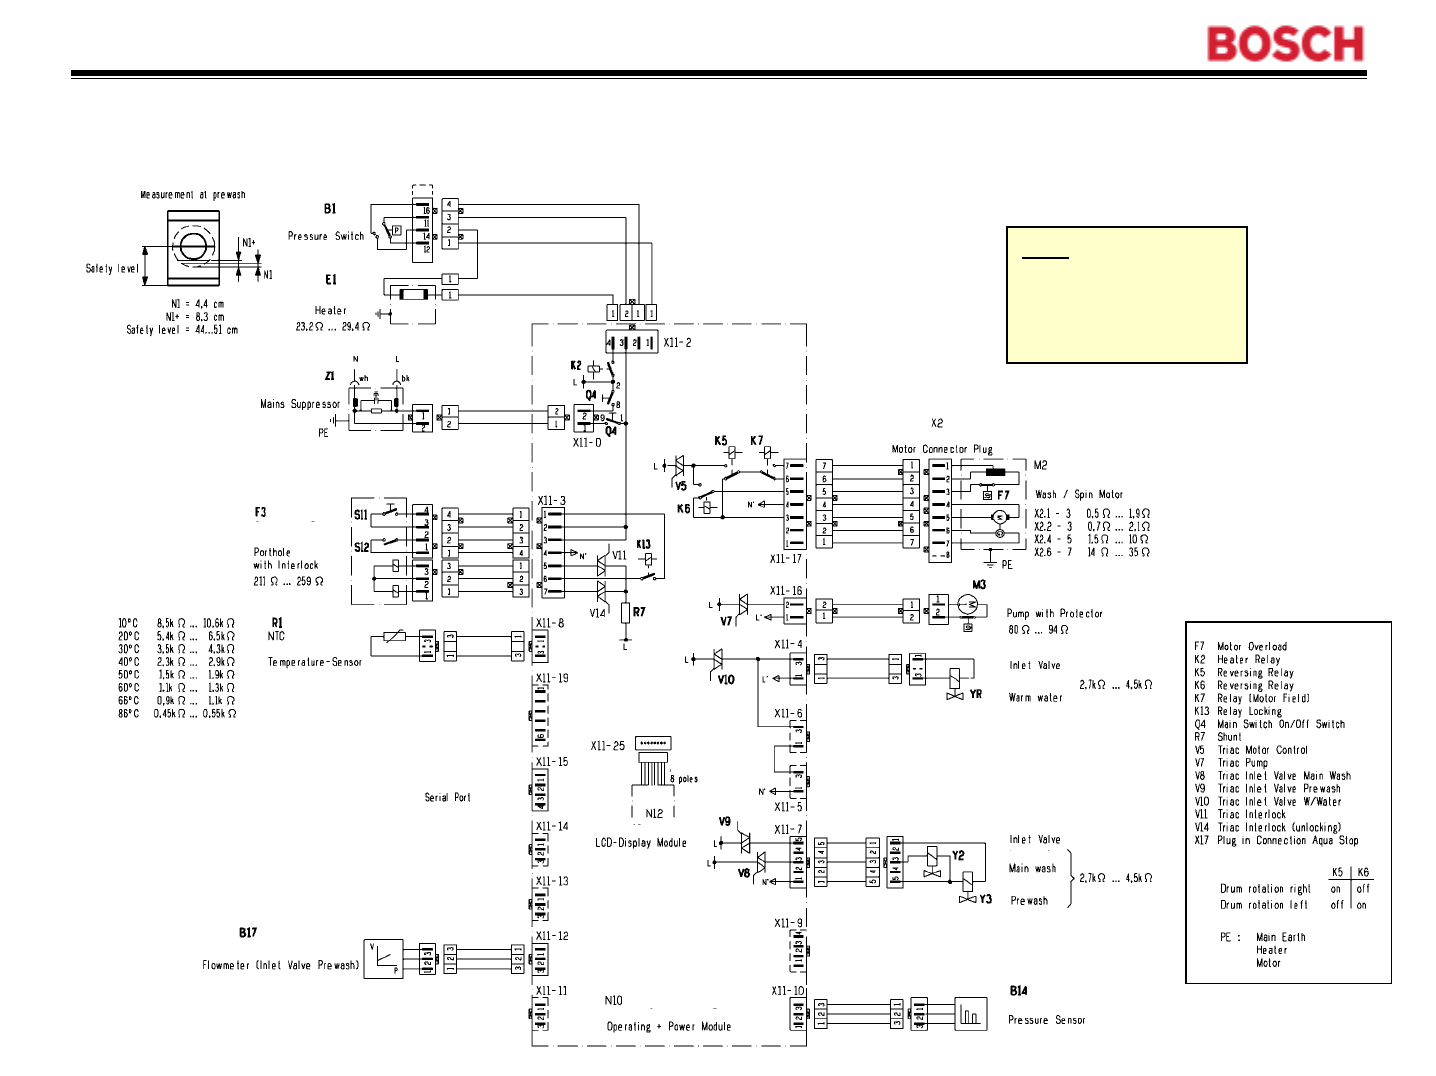 685c8626 18a2 4257 9875 ef2afaffb9a4 bg28 page 40 of bosch appliances washer wfr 2460uc user guide dishwasher motor wiring diagram at cos-gaming.co